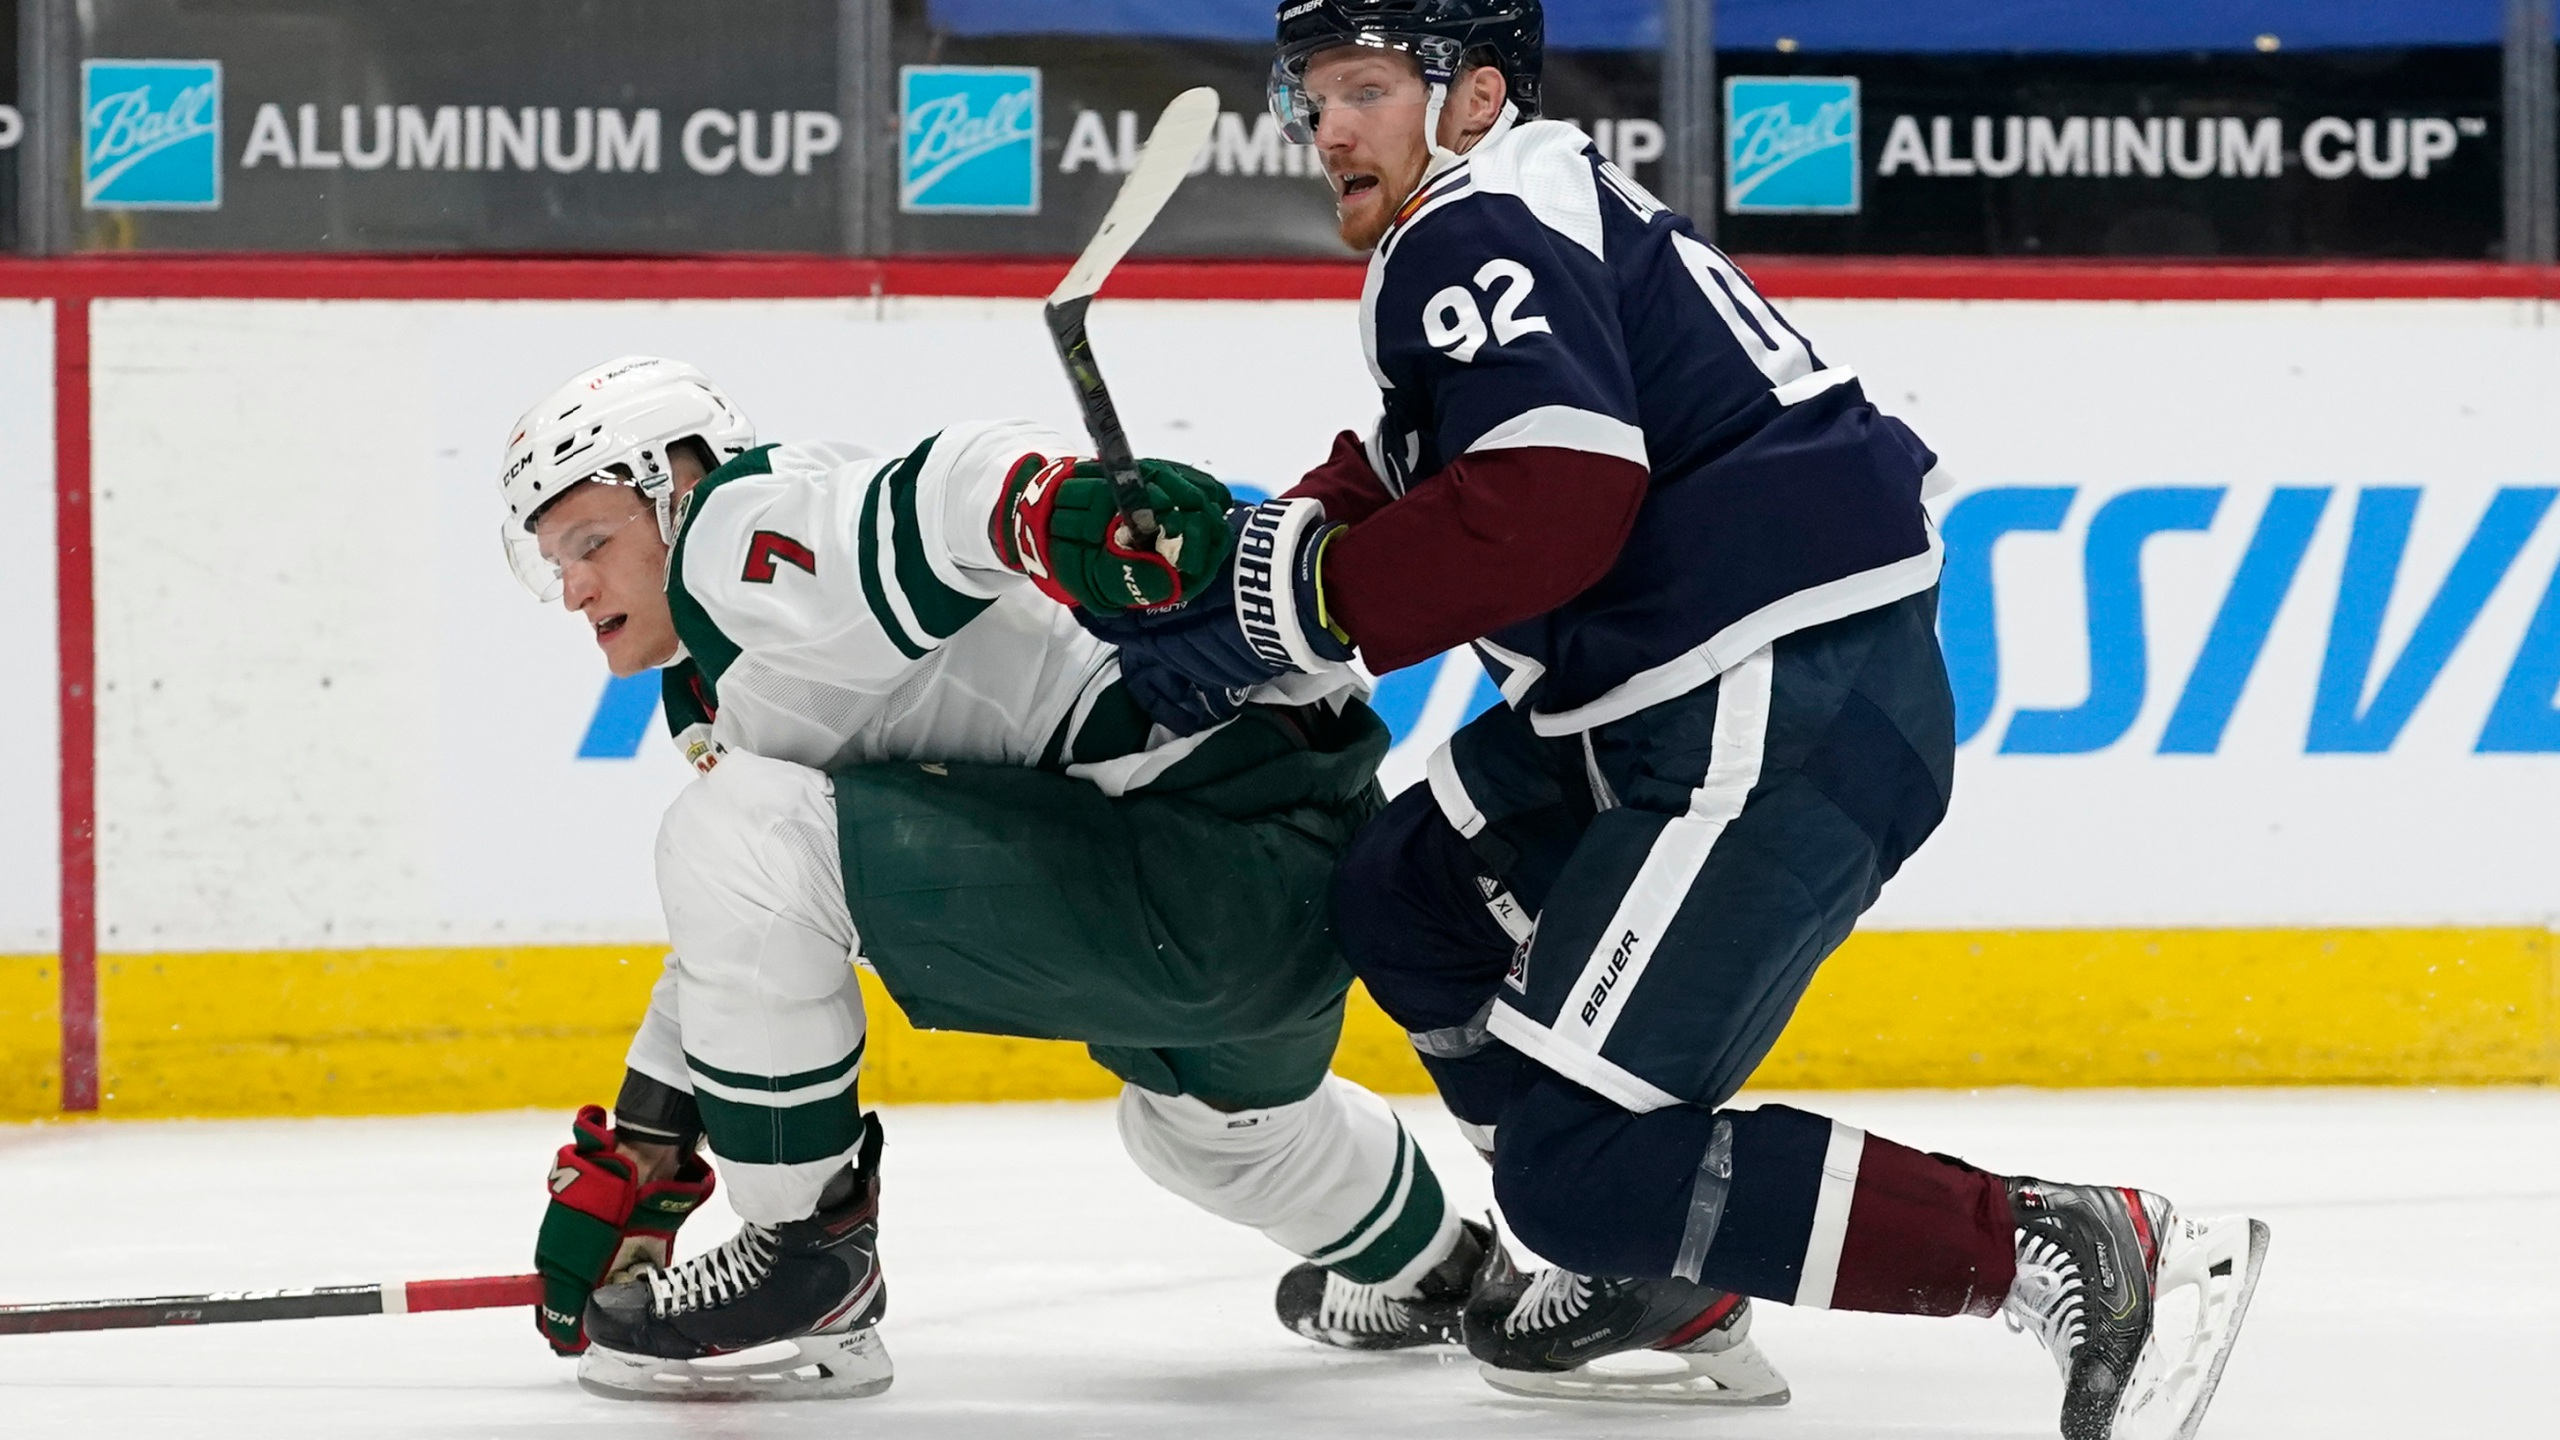 Minnesota Wild center Nico Sturm, left, is hit by Colorado Avalanche left wing Gabriel Landeskog in the second period of an NHL hockey game Thursday, March 18, 2021, in Denver. (AP Photo/David Zalubowski)